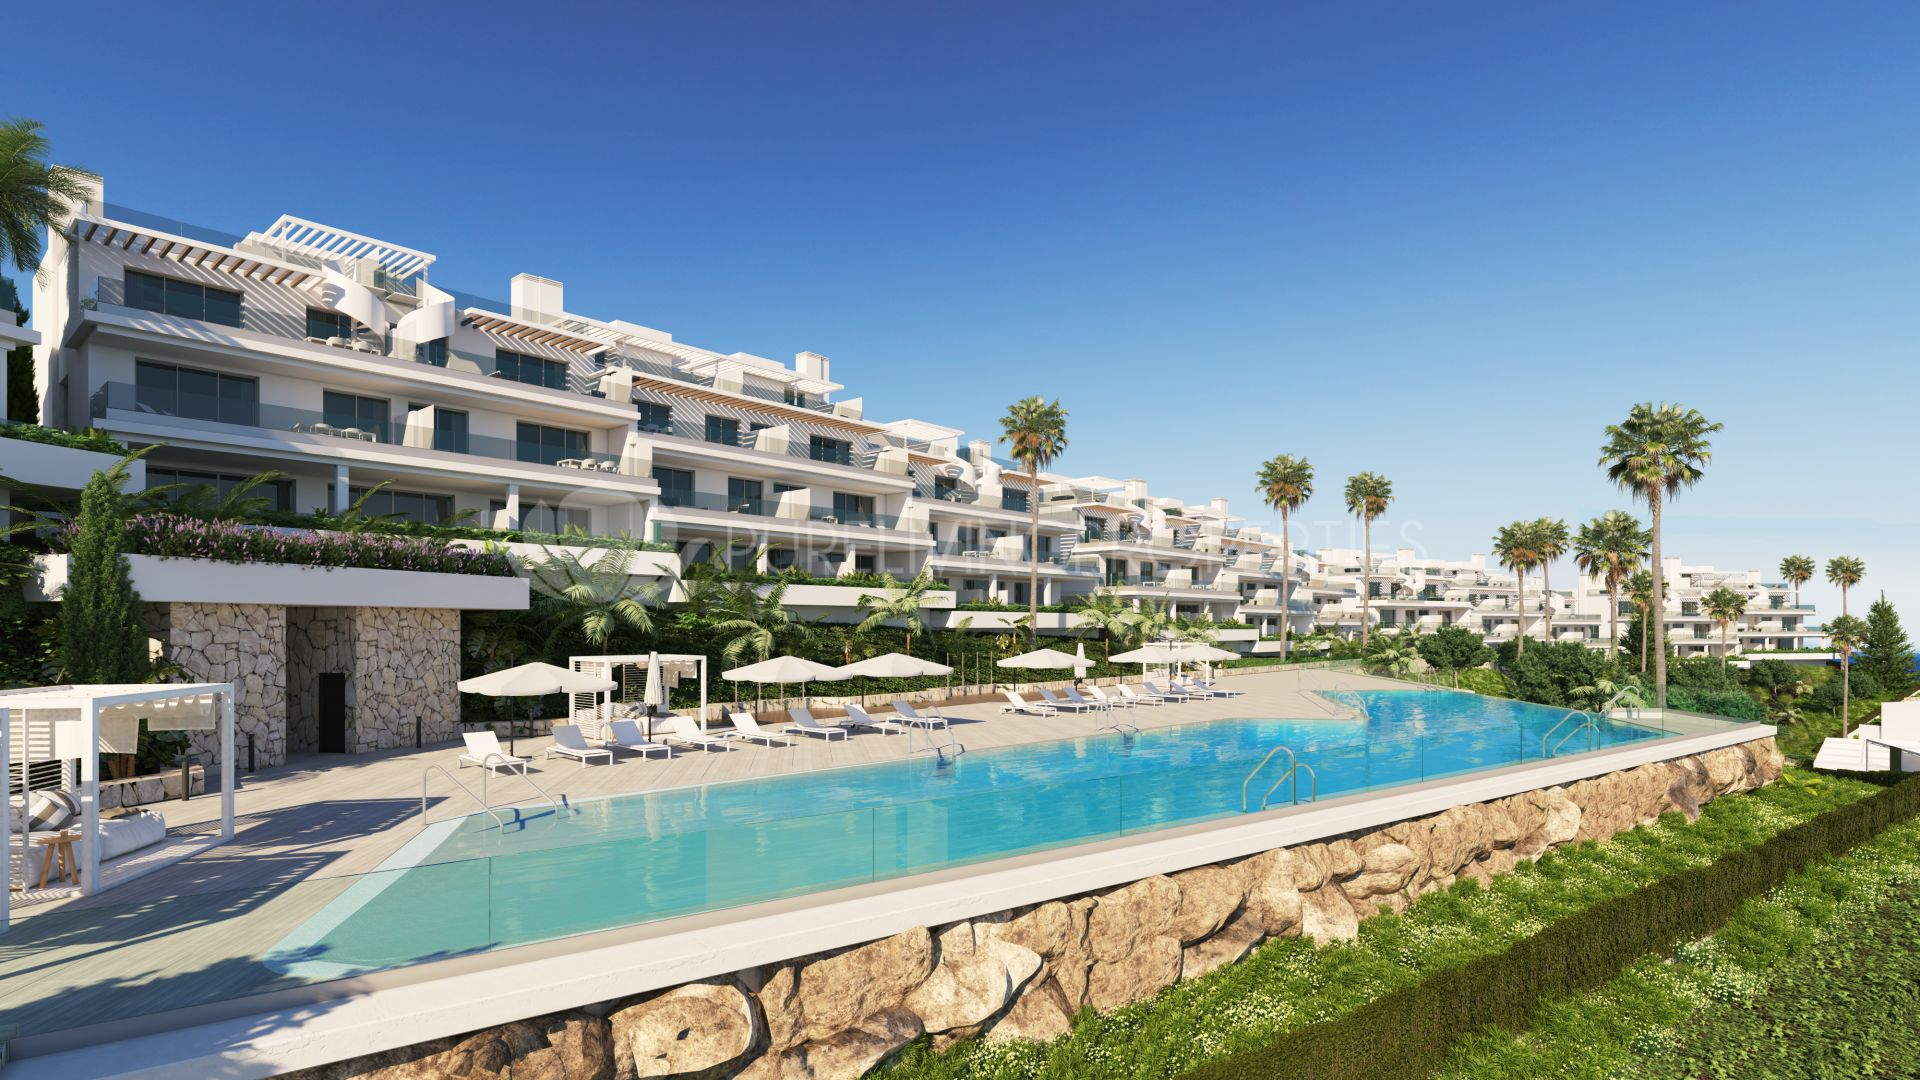 New Developments for sale in cancelada